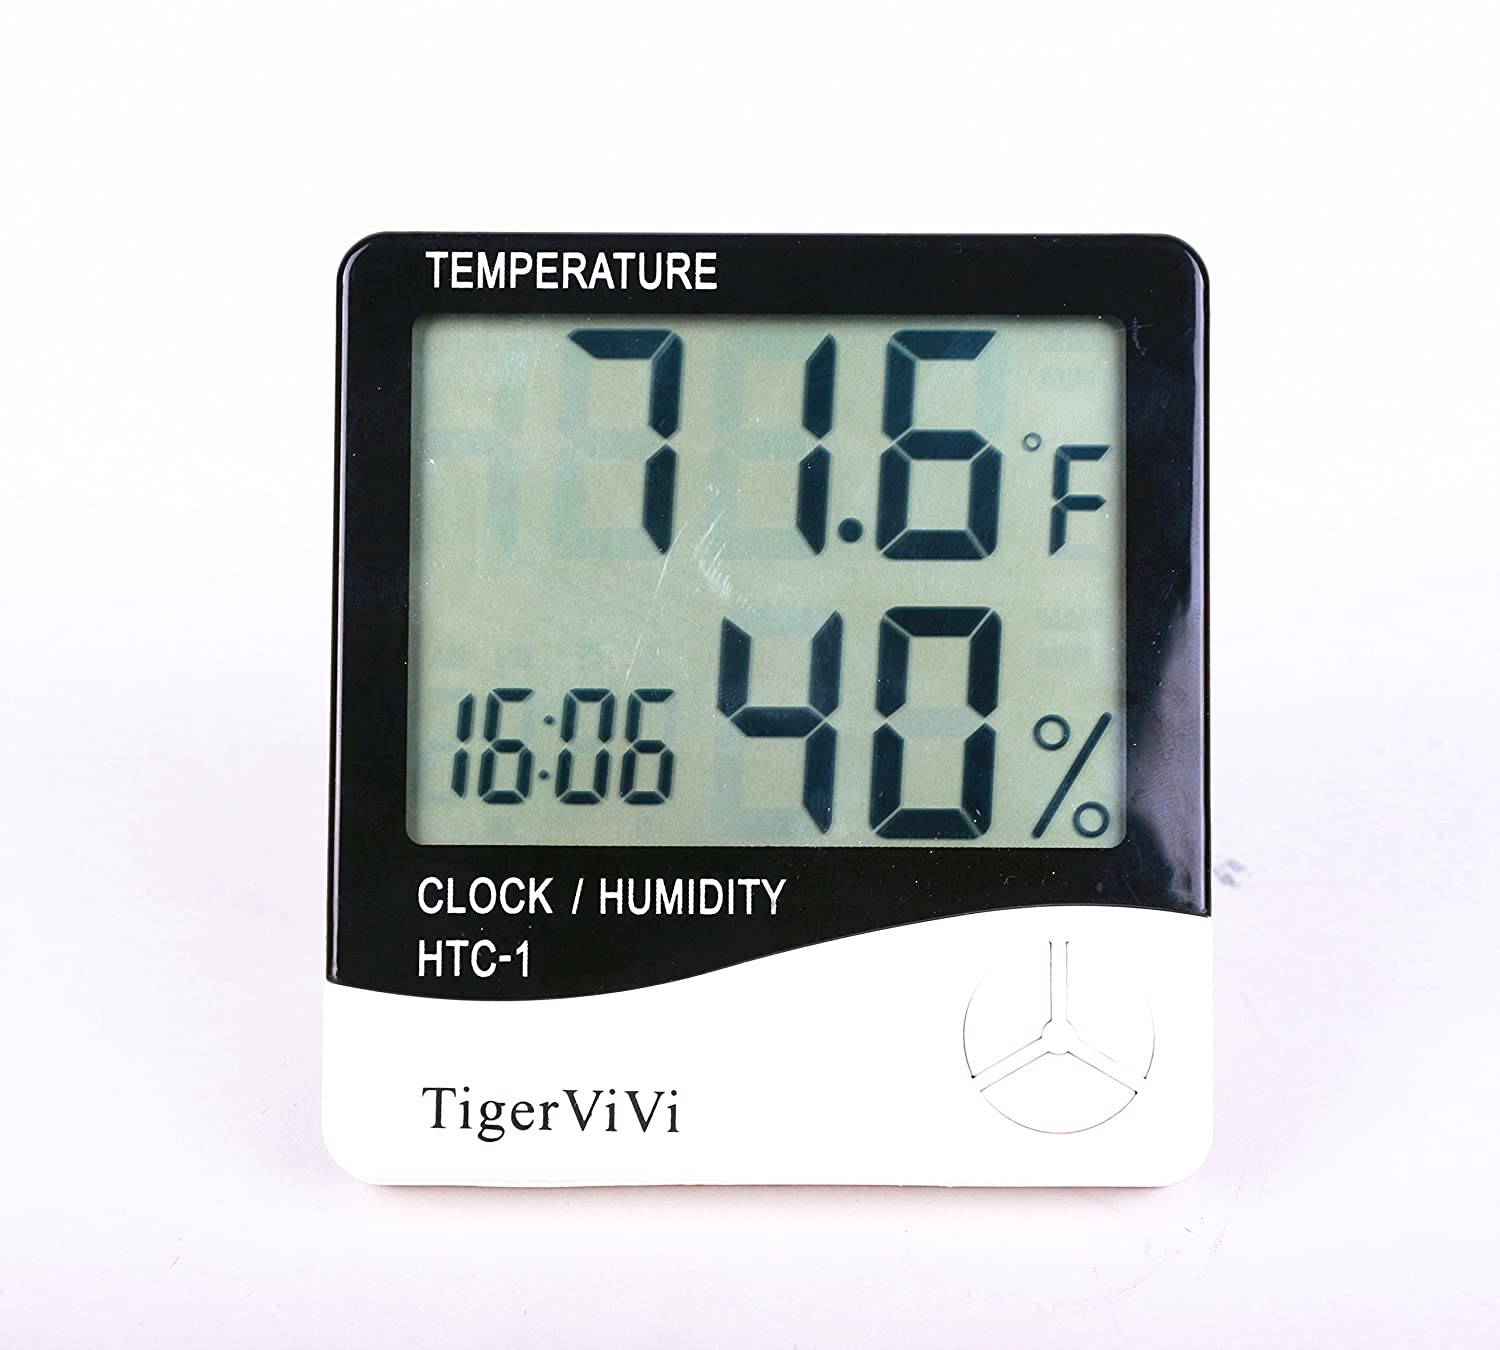 TigerViVi LCD Digital Display Thermometer Hygrometer Indoor Electronic Temperature Humidity Meter Clock Weather Alarm Clock FBA_B01IGOOQ8S